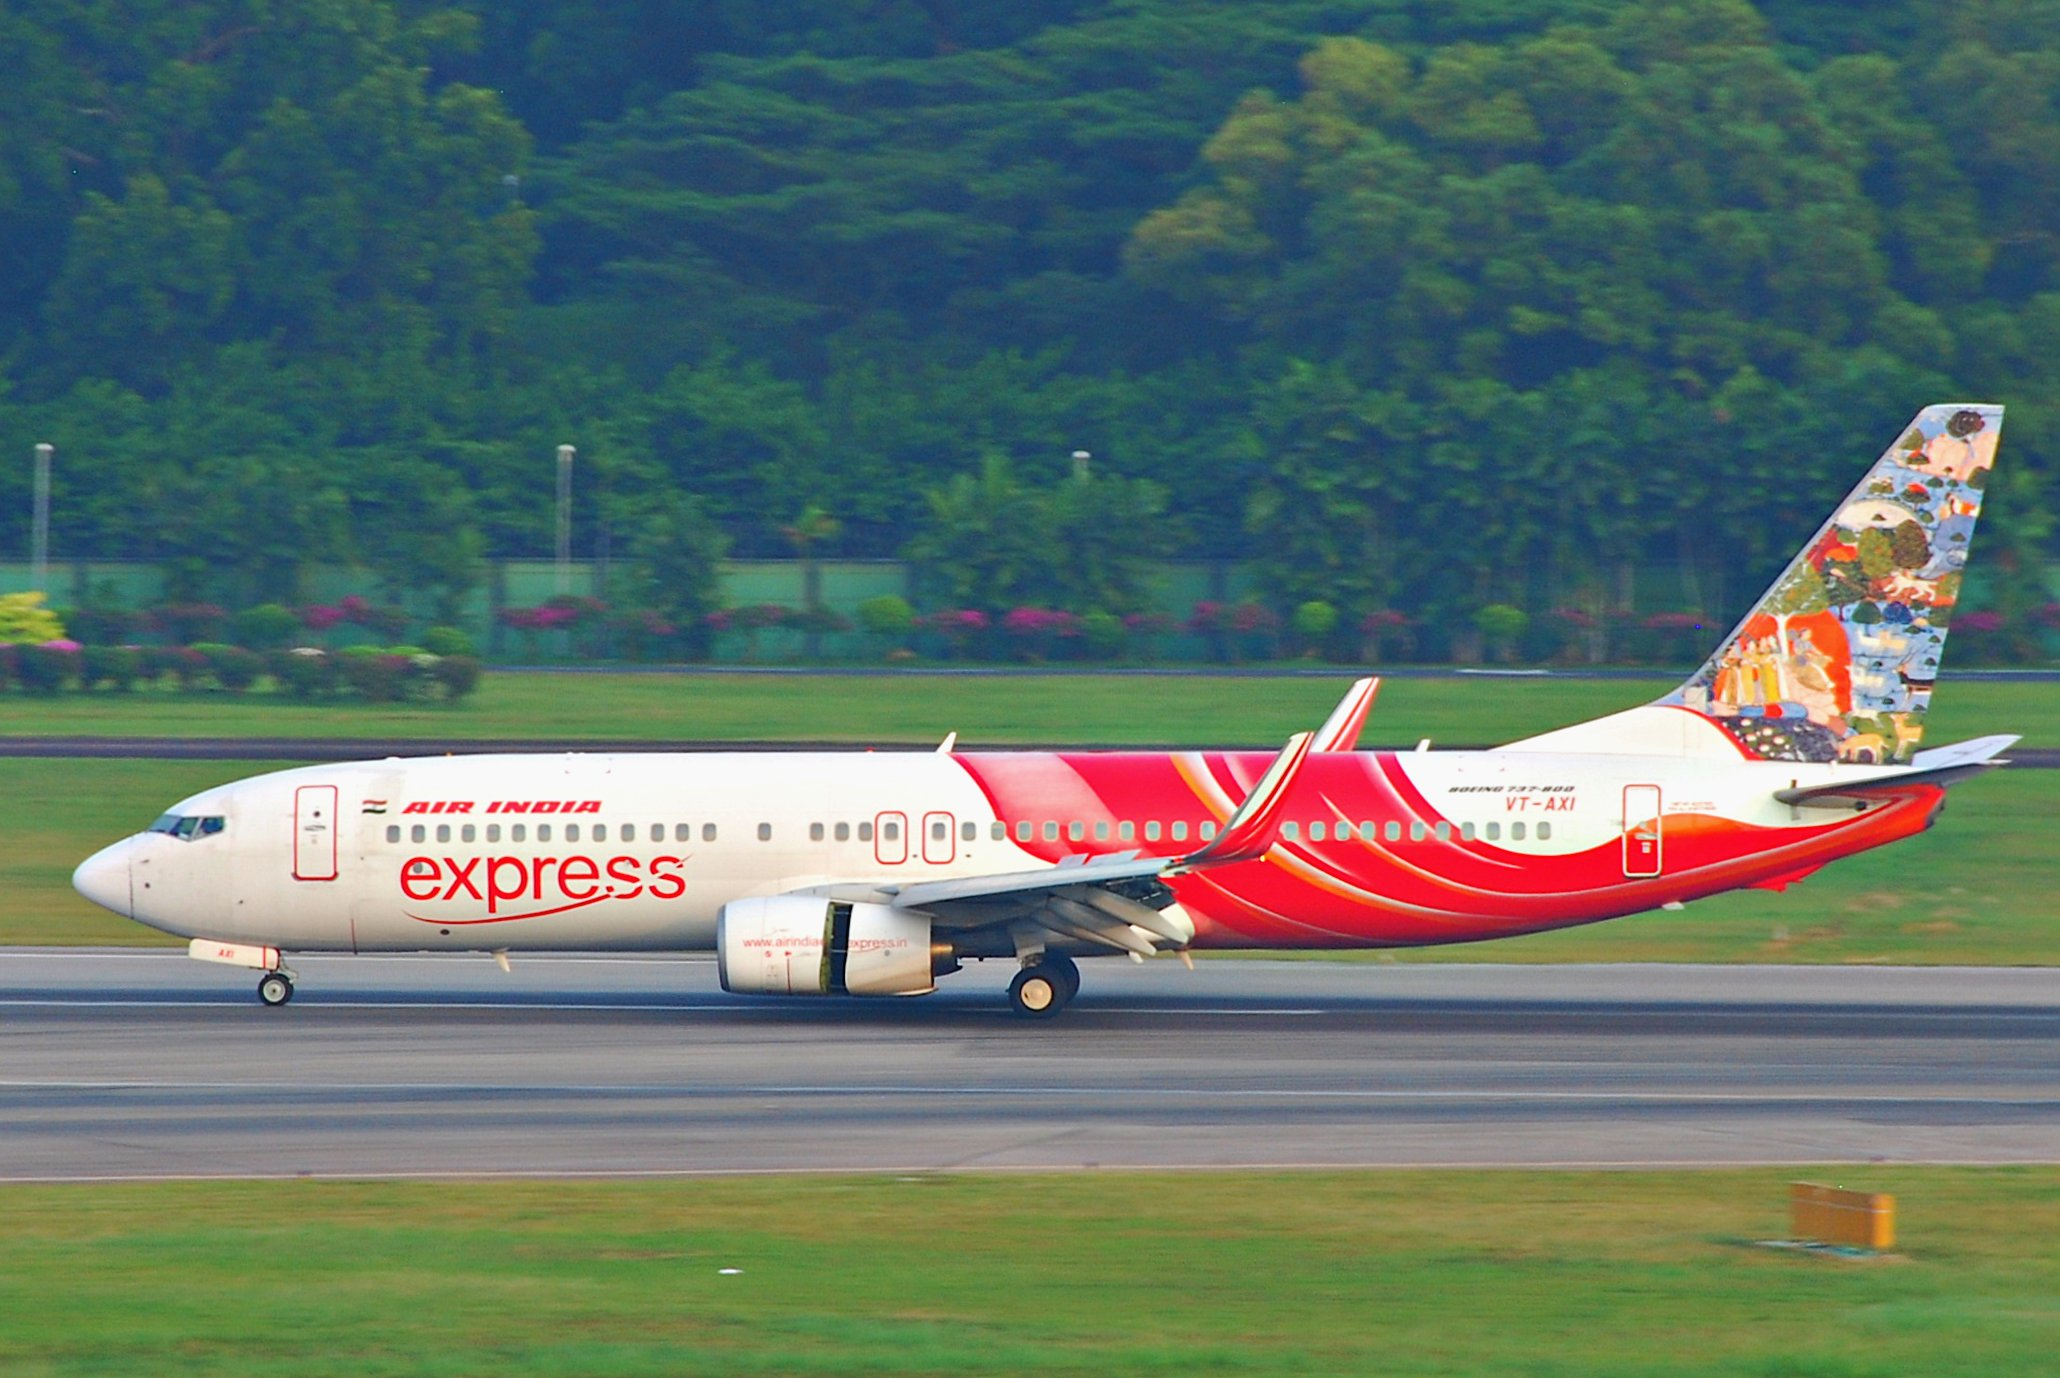 Air India Express Flight Status – Helps Find the Latest